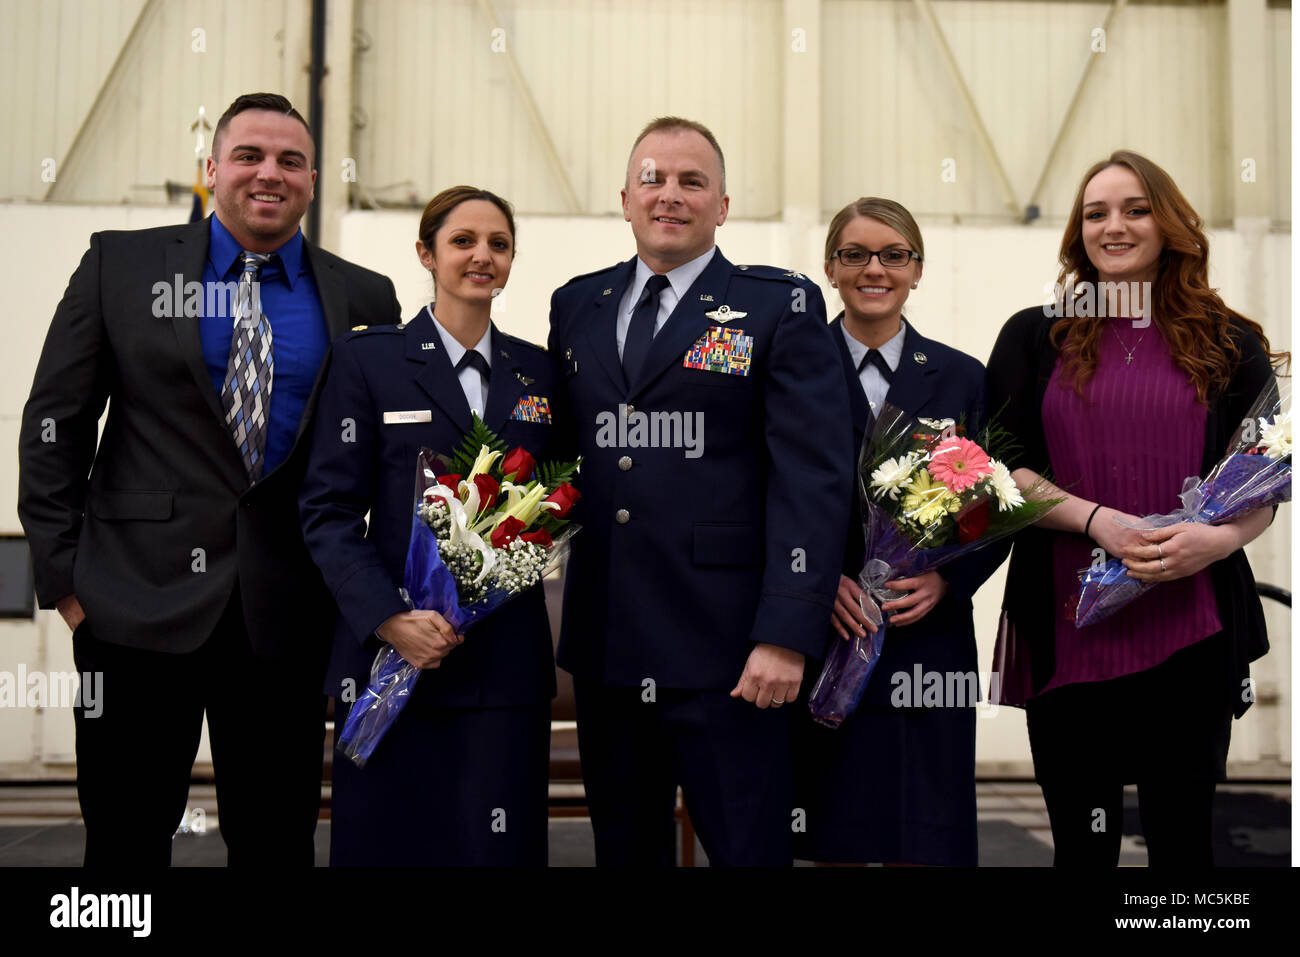 Gary Dodge Poses With His Family After They Pin Him To The Rank Of Colonel During Promotion Ceremony Held At North Carolina Air National Guard